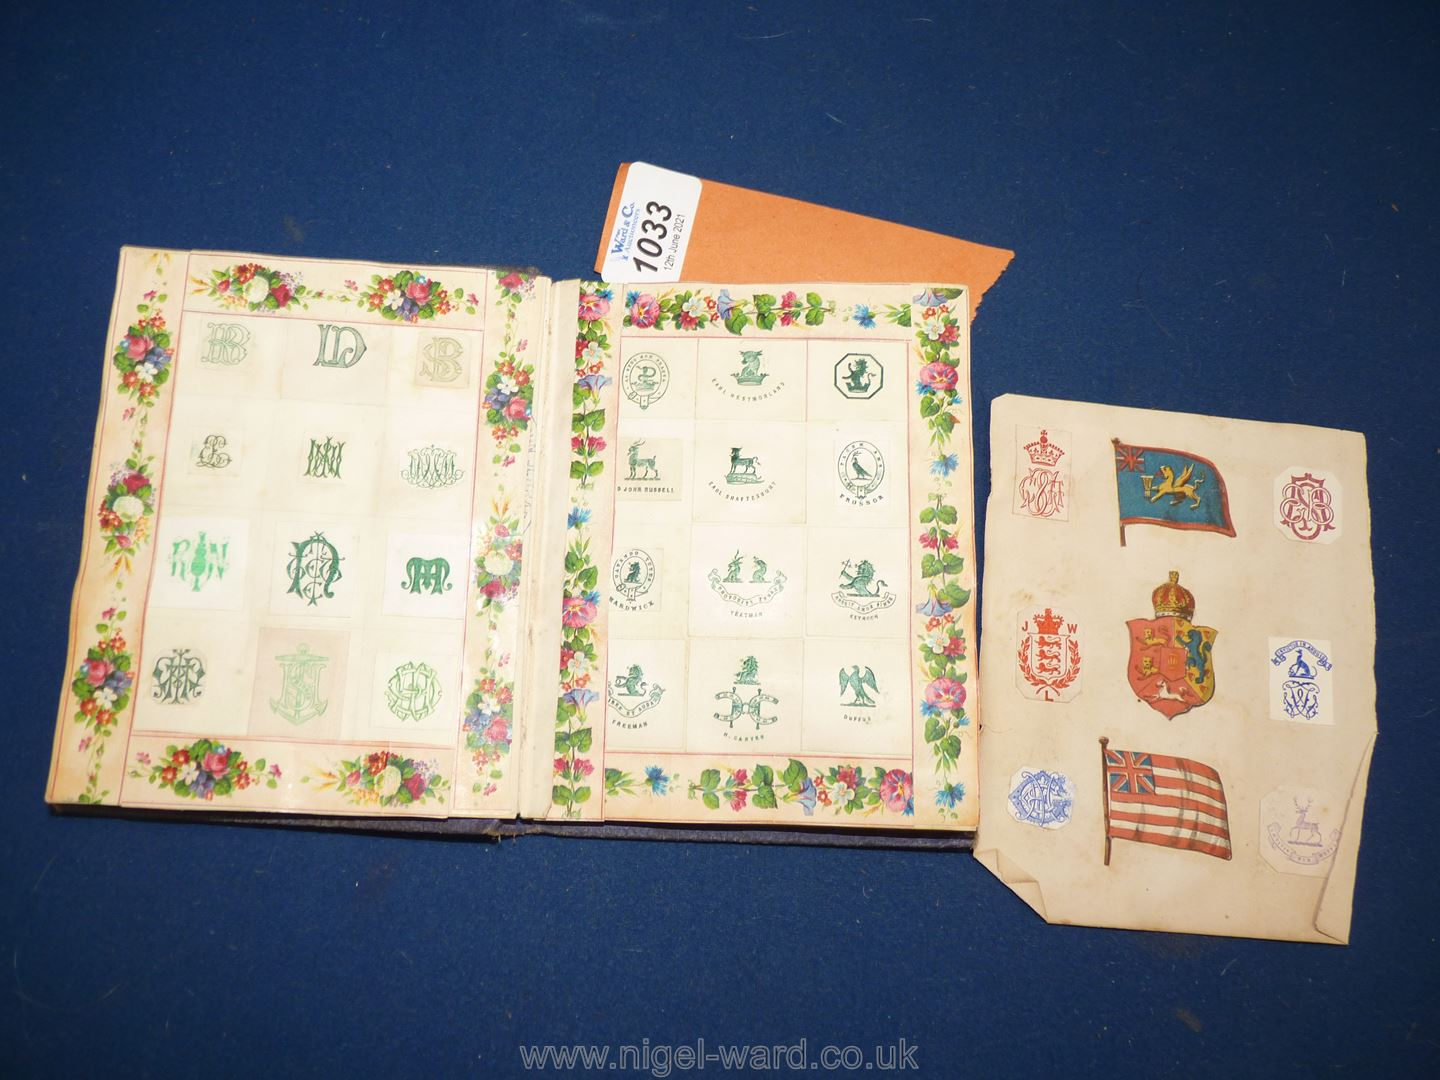 An interesting album of Coats of Arms, ciphers etc including Queen Victoria's family, nobility, - Image 2 of 7